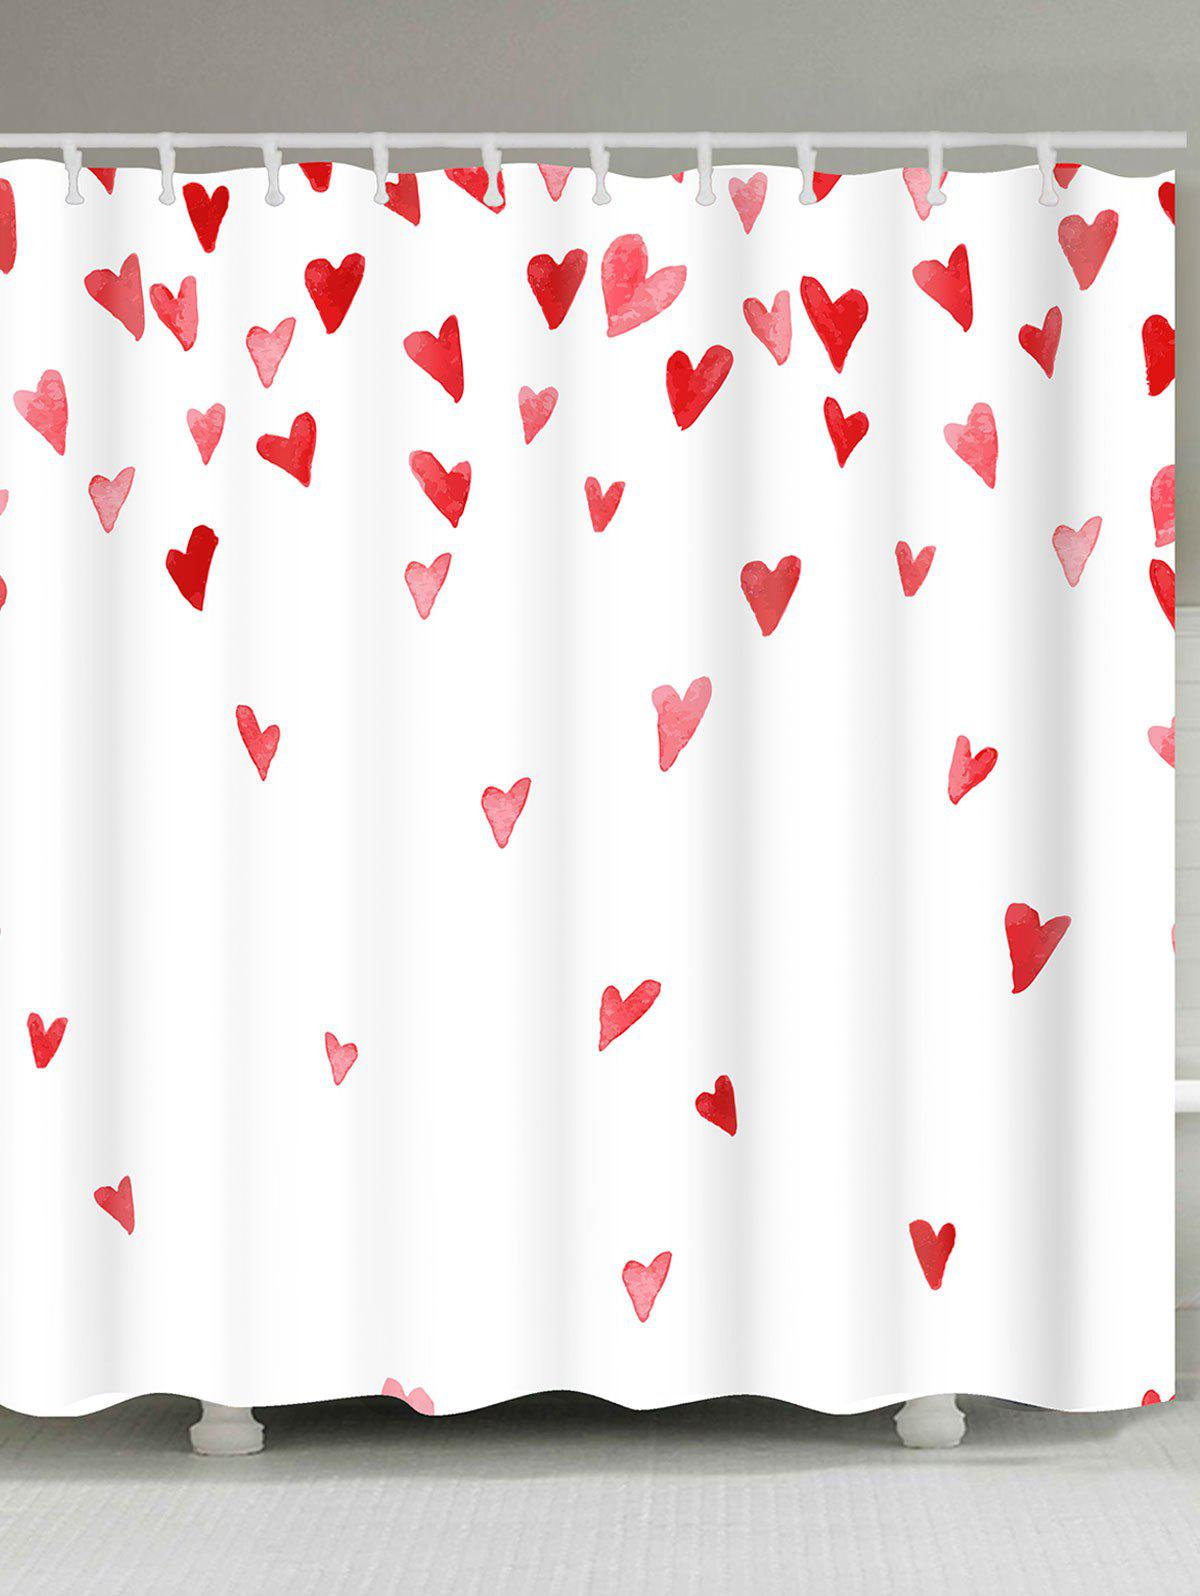 Unique Valentine's Day Heart of Love Patterned Shower Curtain